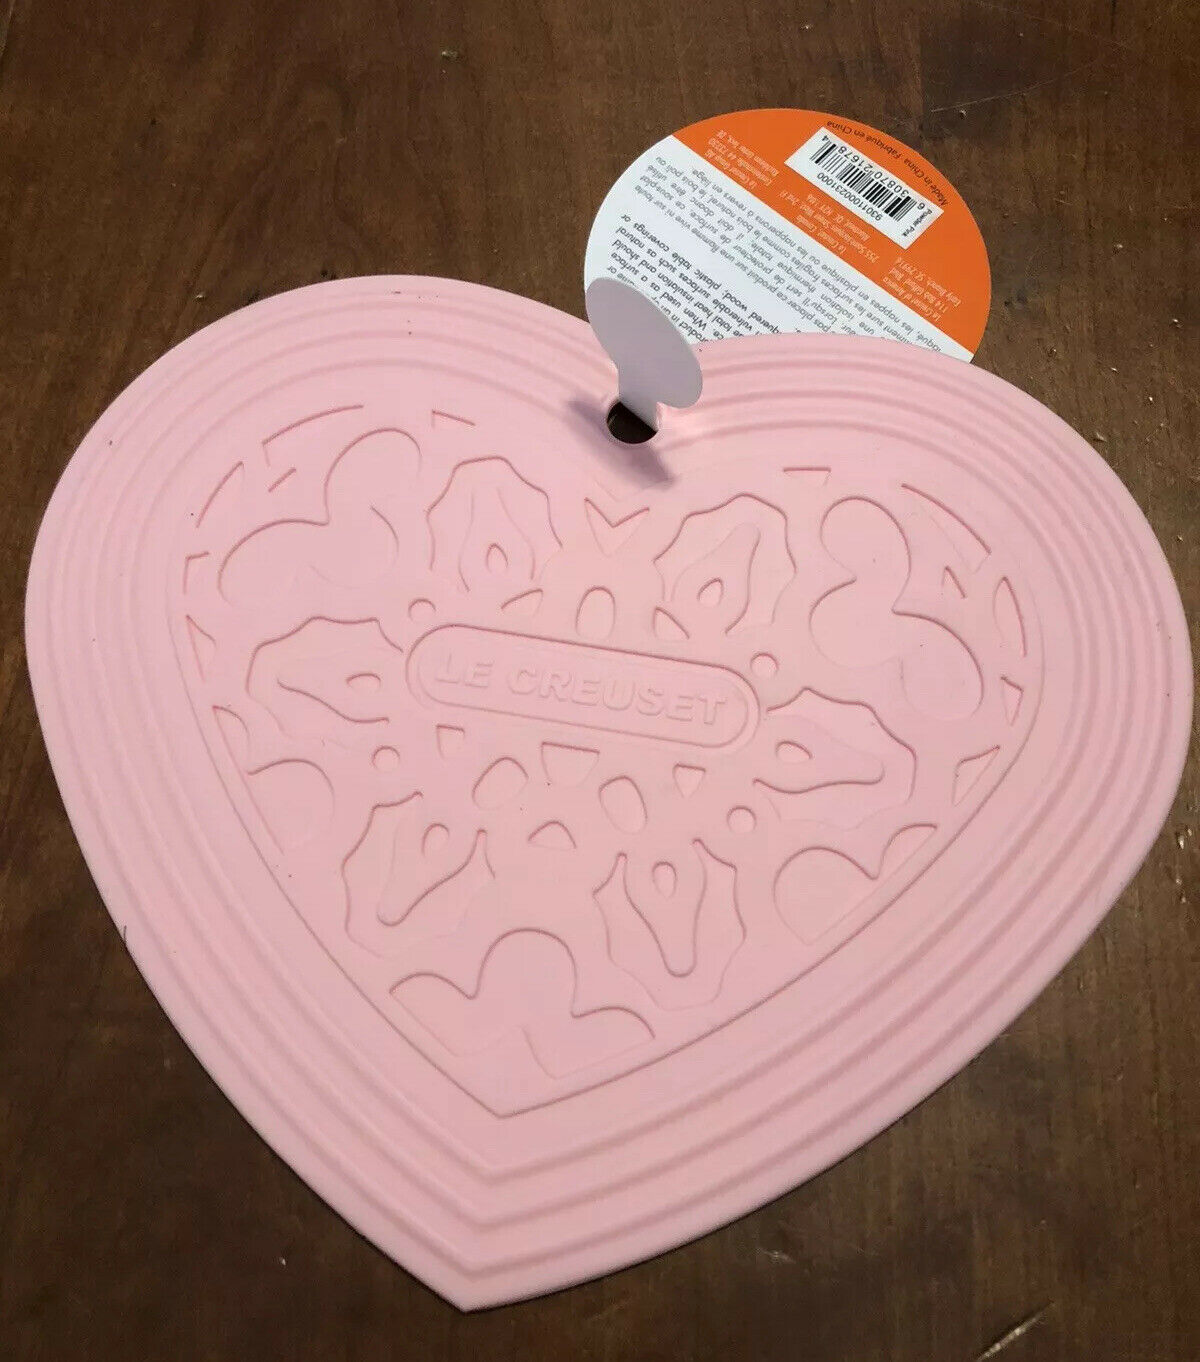 "Nappe Table En Bois ""powder pink"" le creuset 7.75"" silicone heart trivet hot pad mat nwt cool  tool"